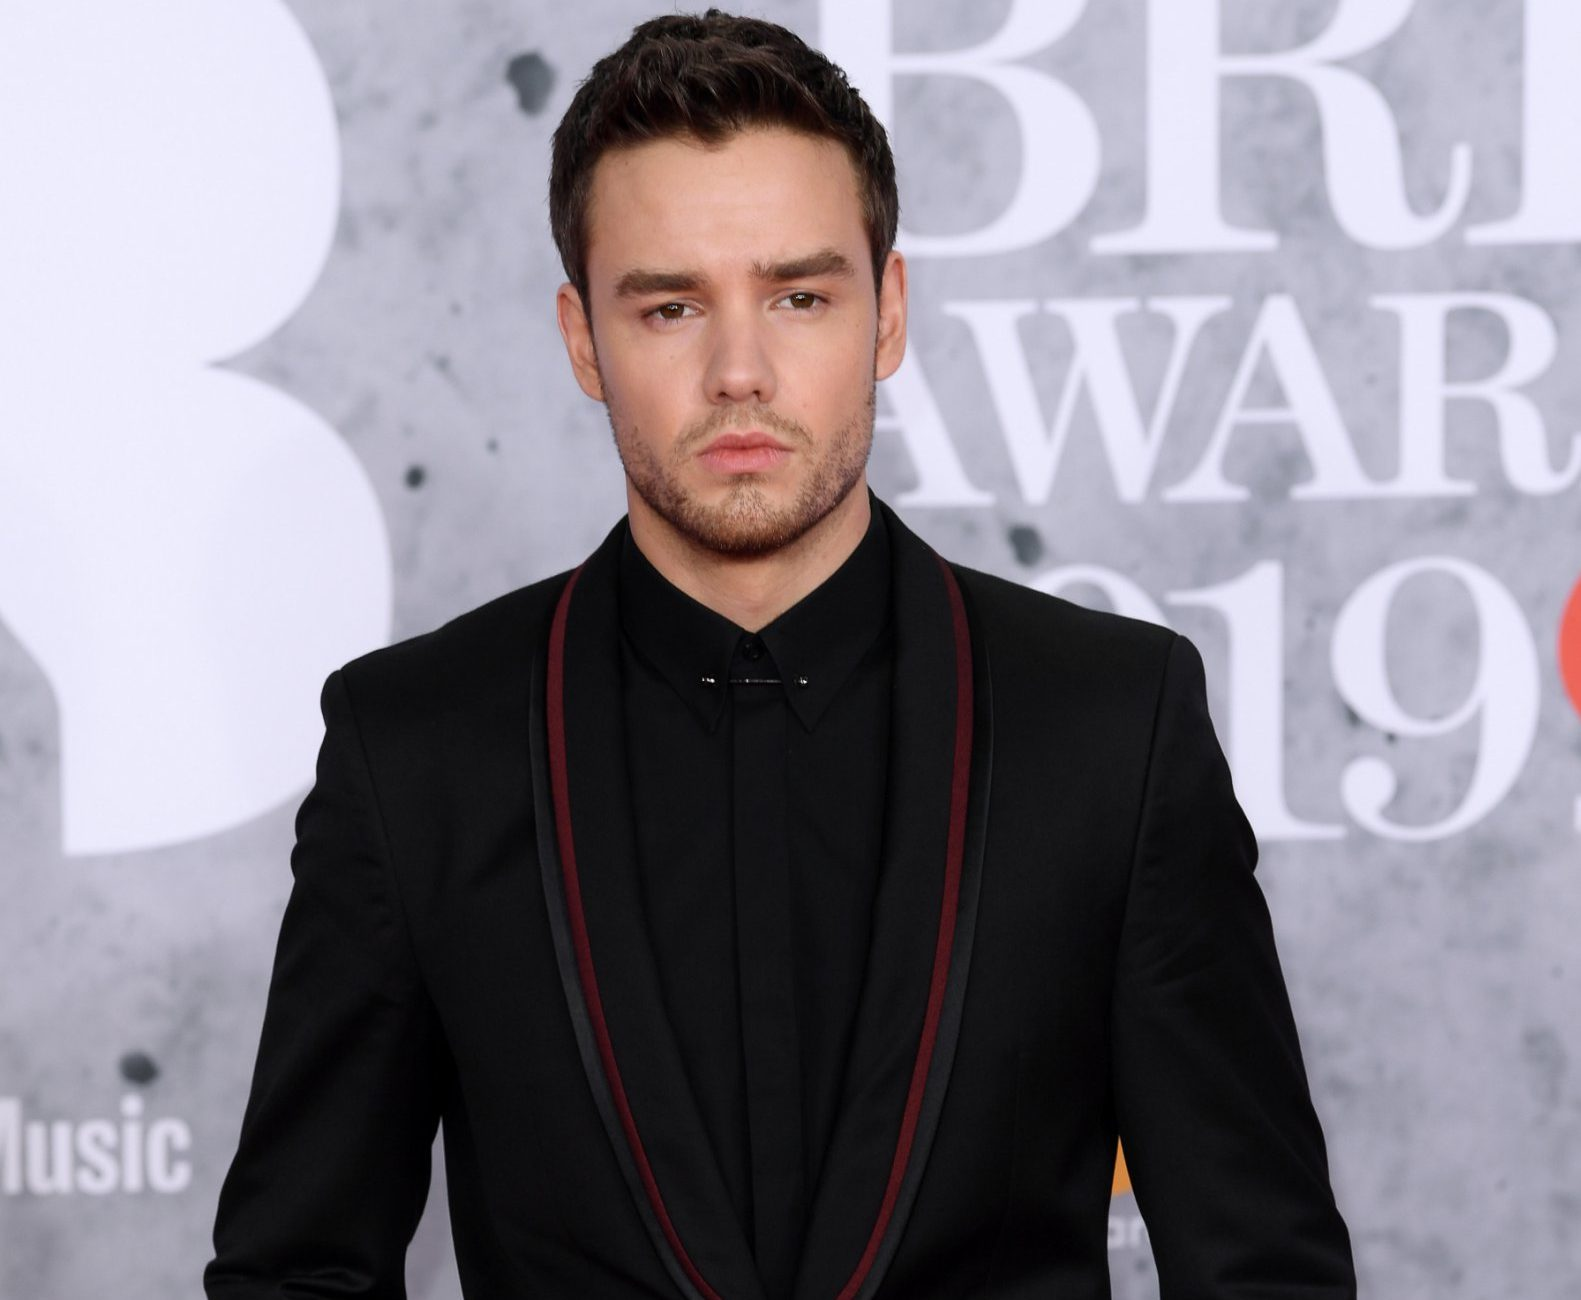 Mandatory Credit: Photo by David Fisher/REX (10110752cs) Liam Payne 39th Brit Awards, Arrivals, The O2 Arena, London, UK - 20 Feb 2019